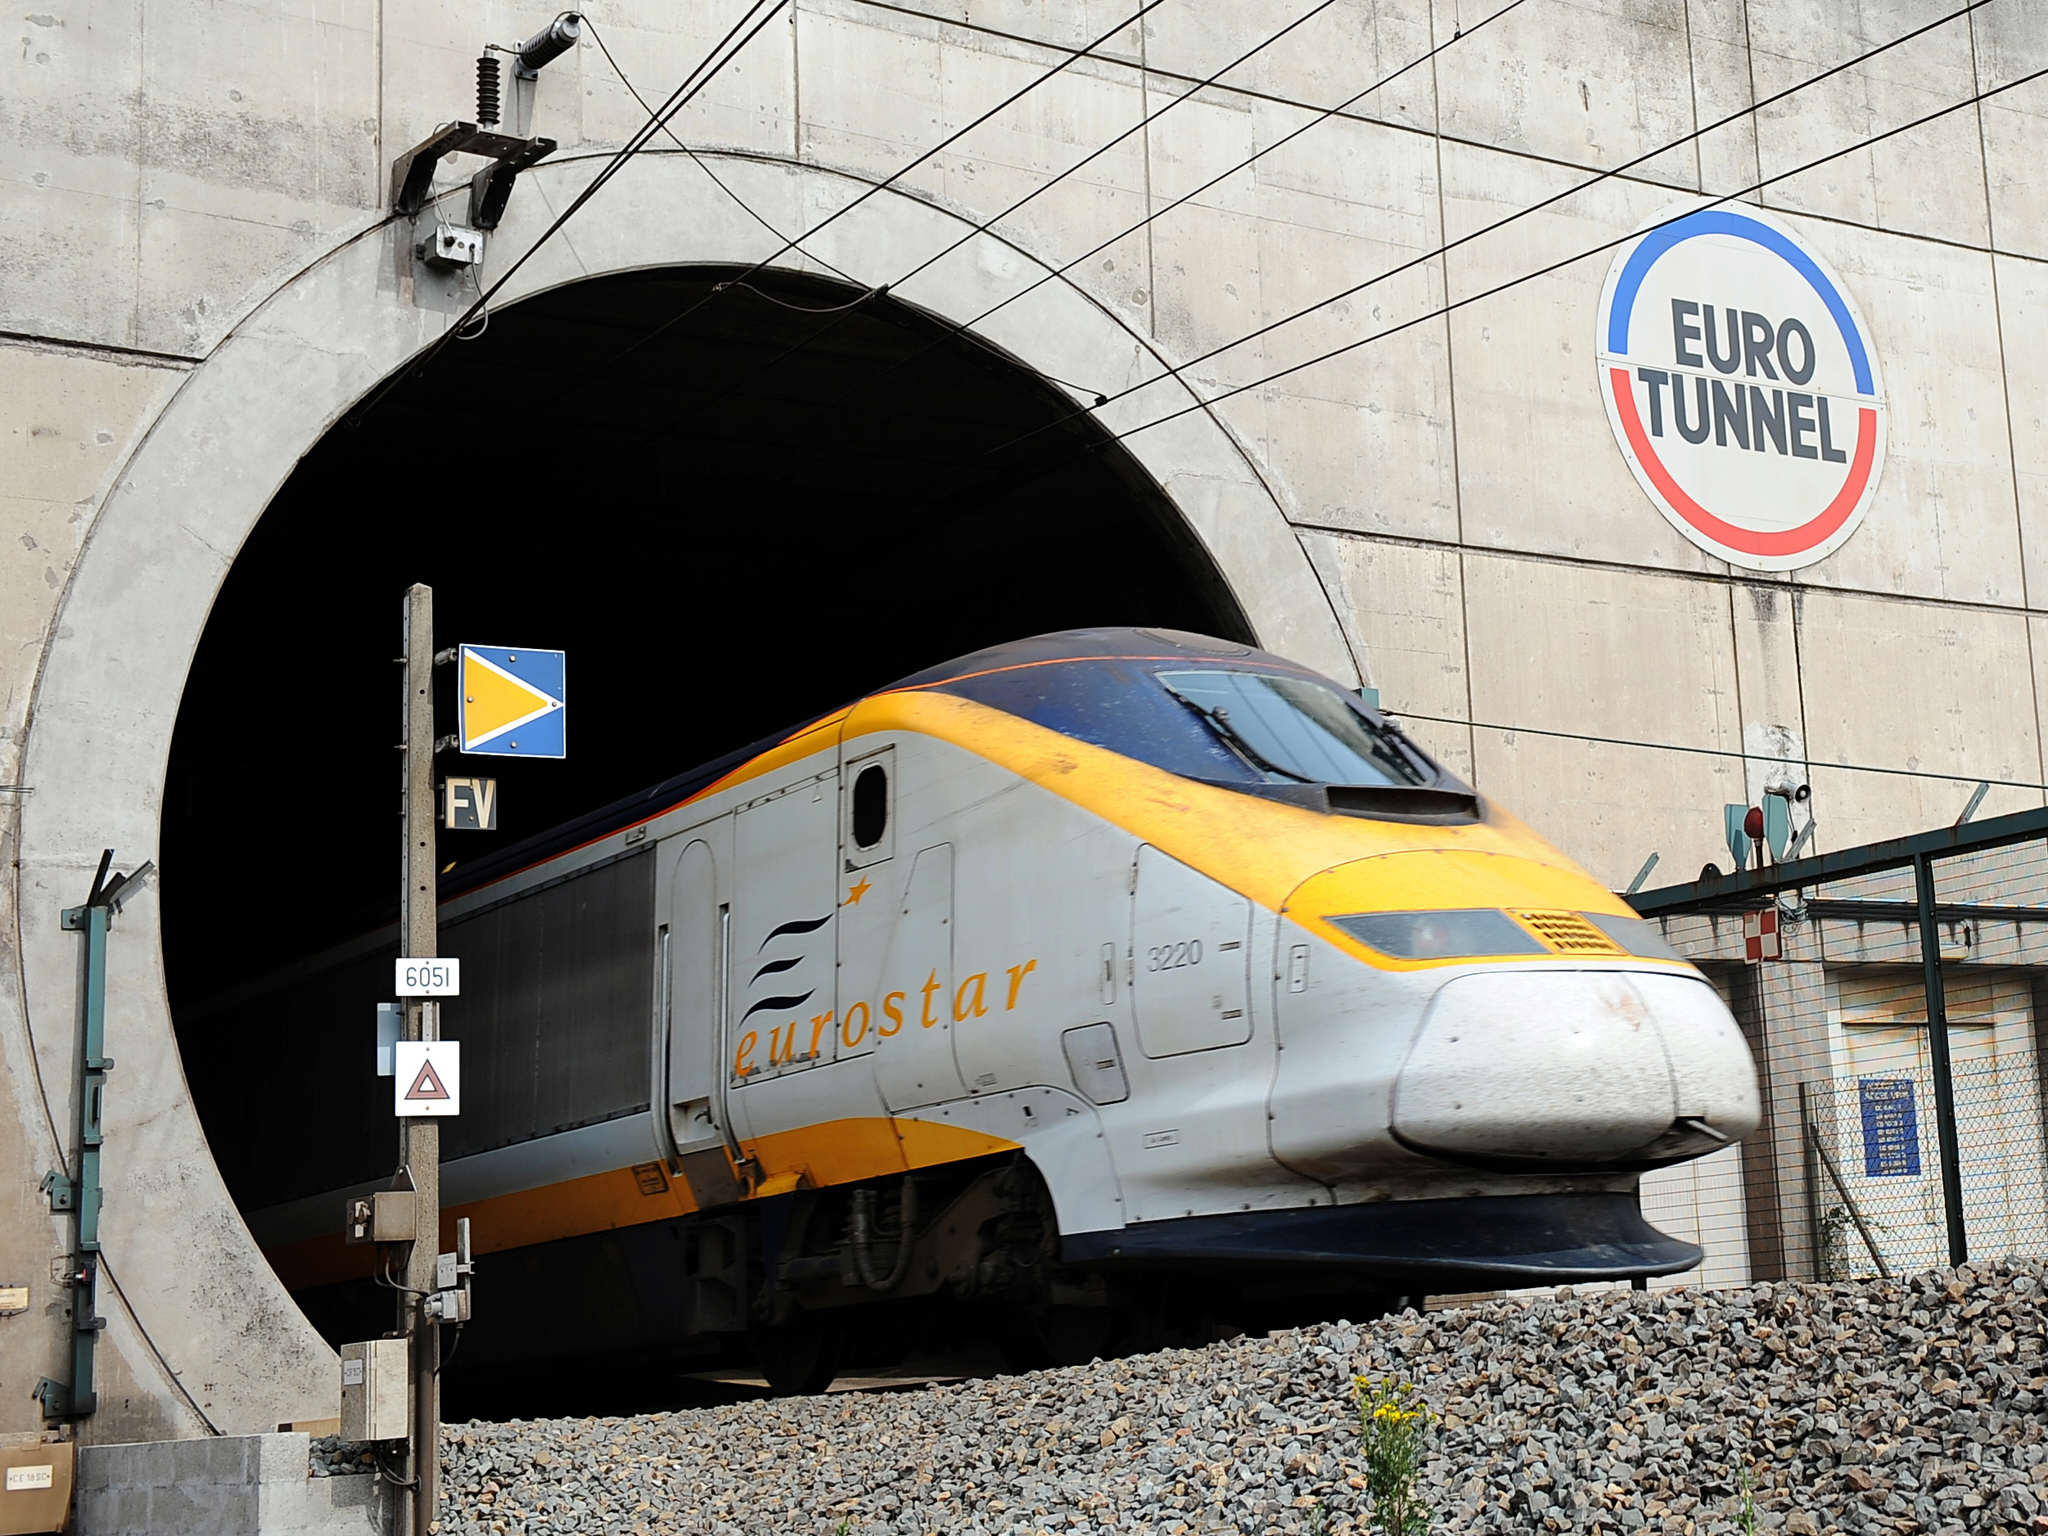 This Is How America Wishes It Was More Like Europe Eurostar eurotunnel